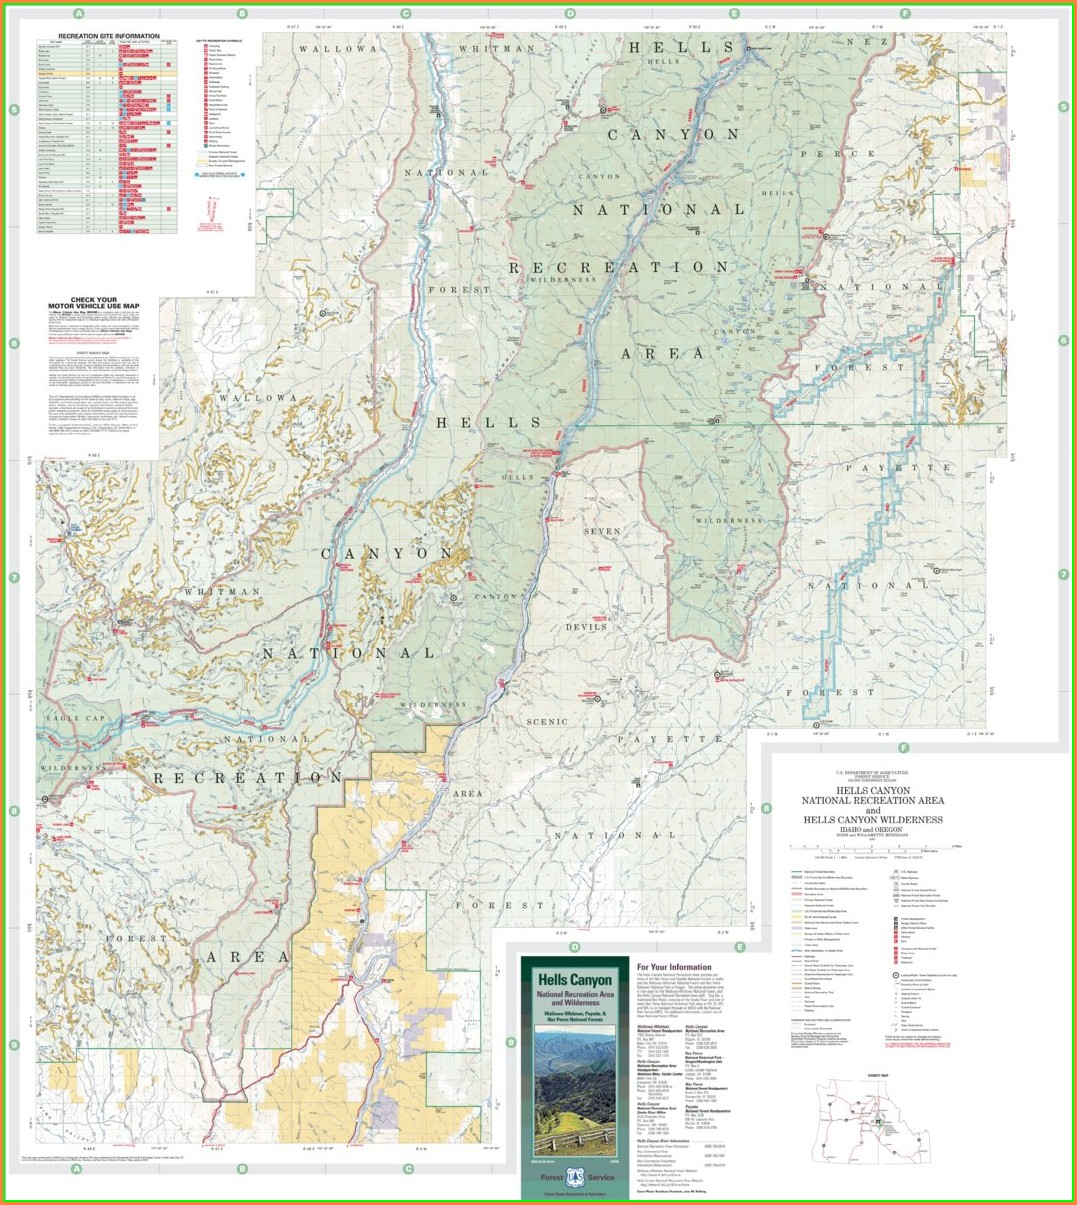 Hells Canyon Trail Map